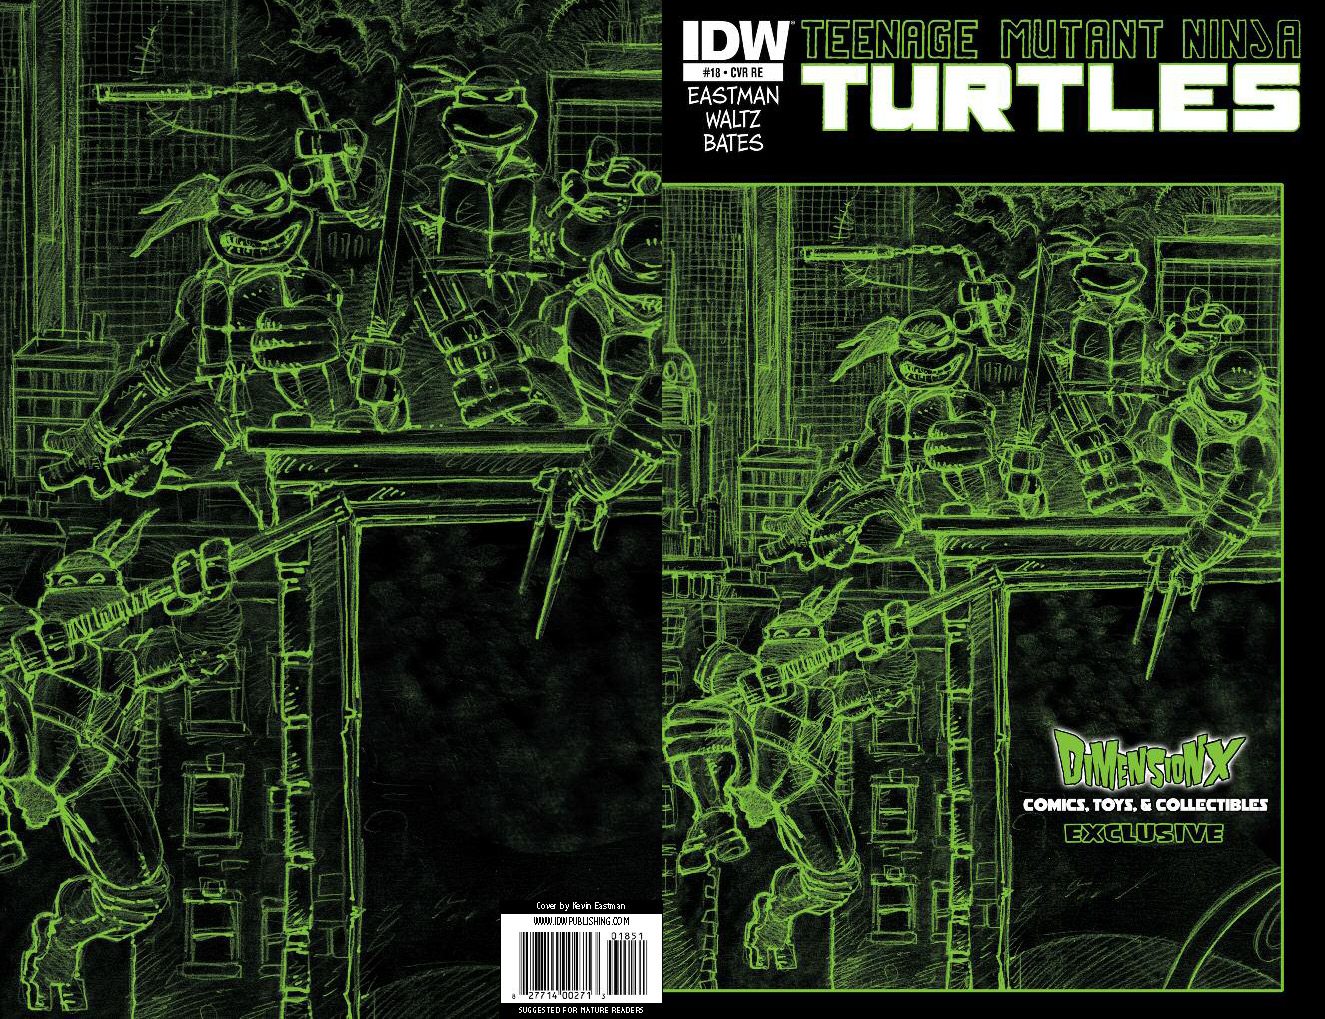 Dimension X Comics Exclusive Cover by Kevin Eastman